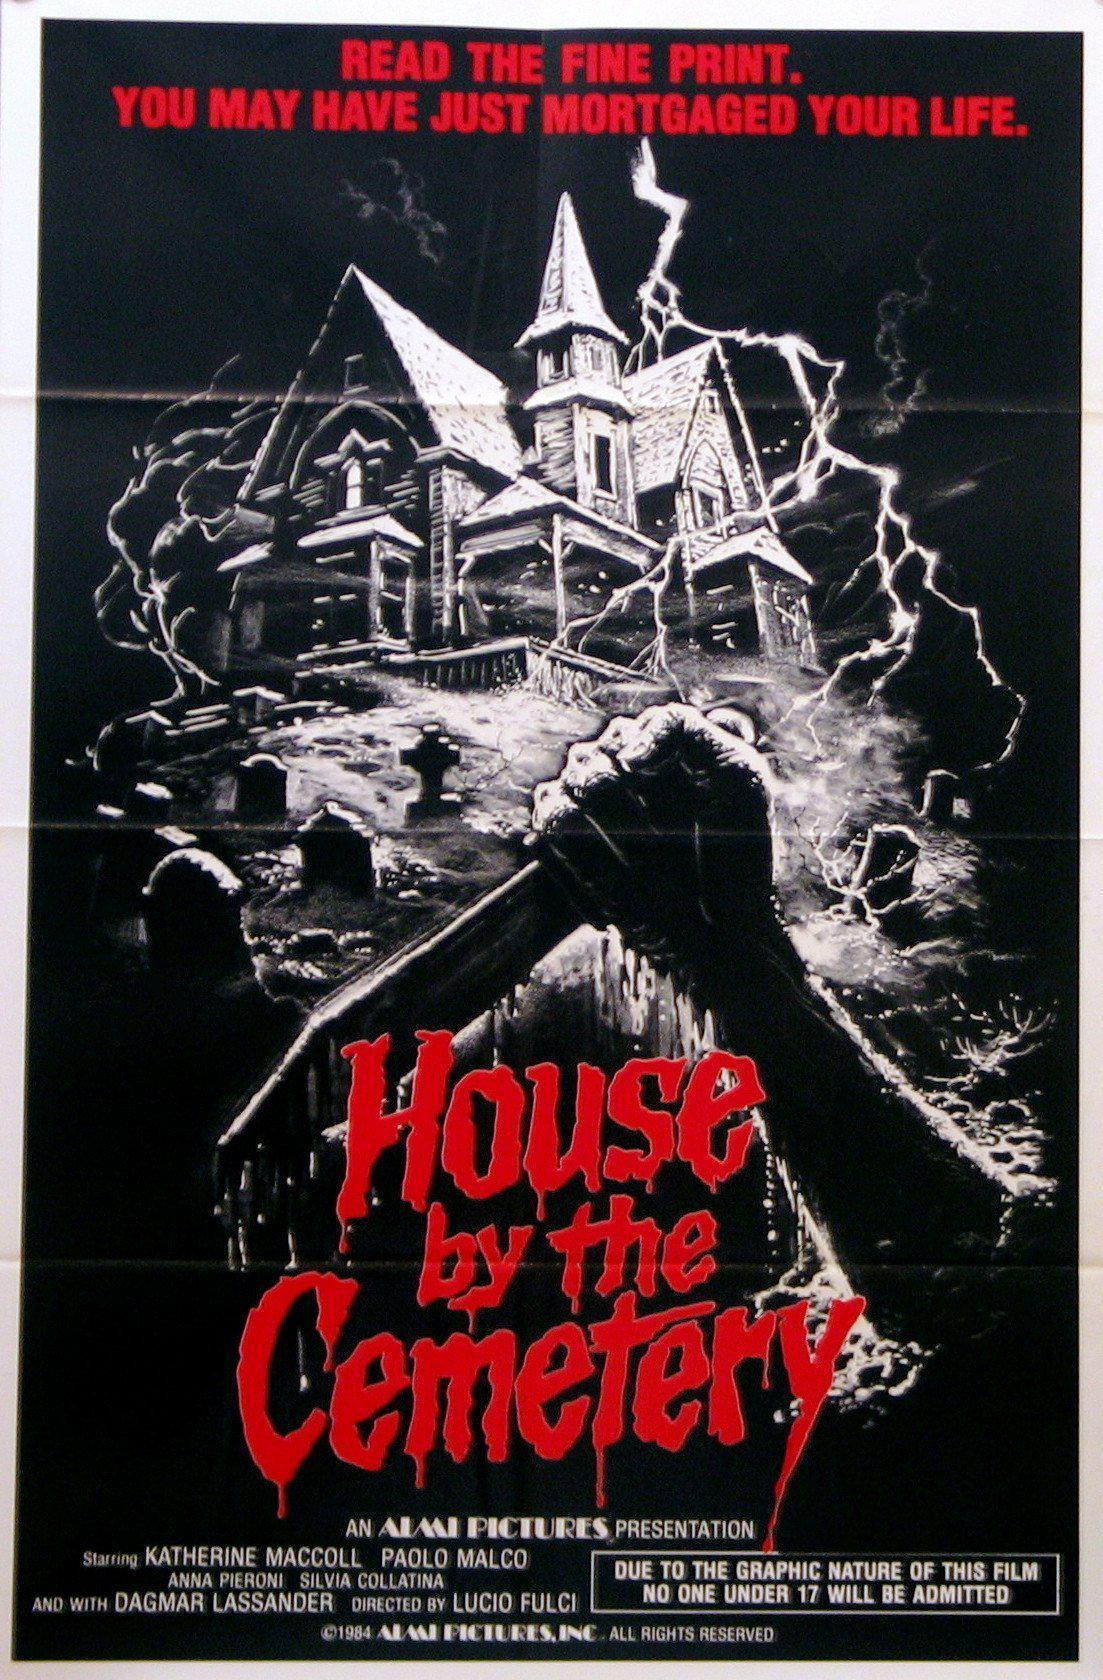 The House By the Cemetery 1 Sheet (27x41) Original Vintage Movie Poster